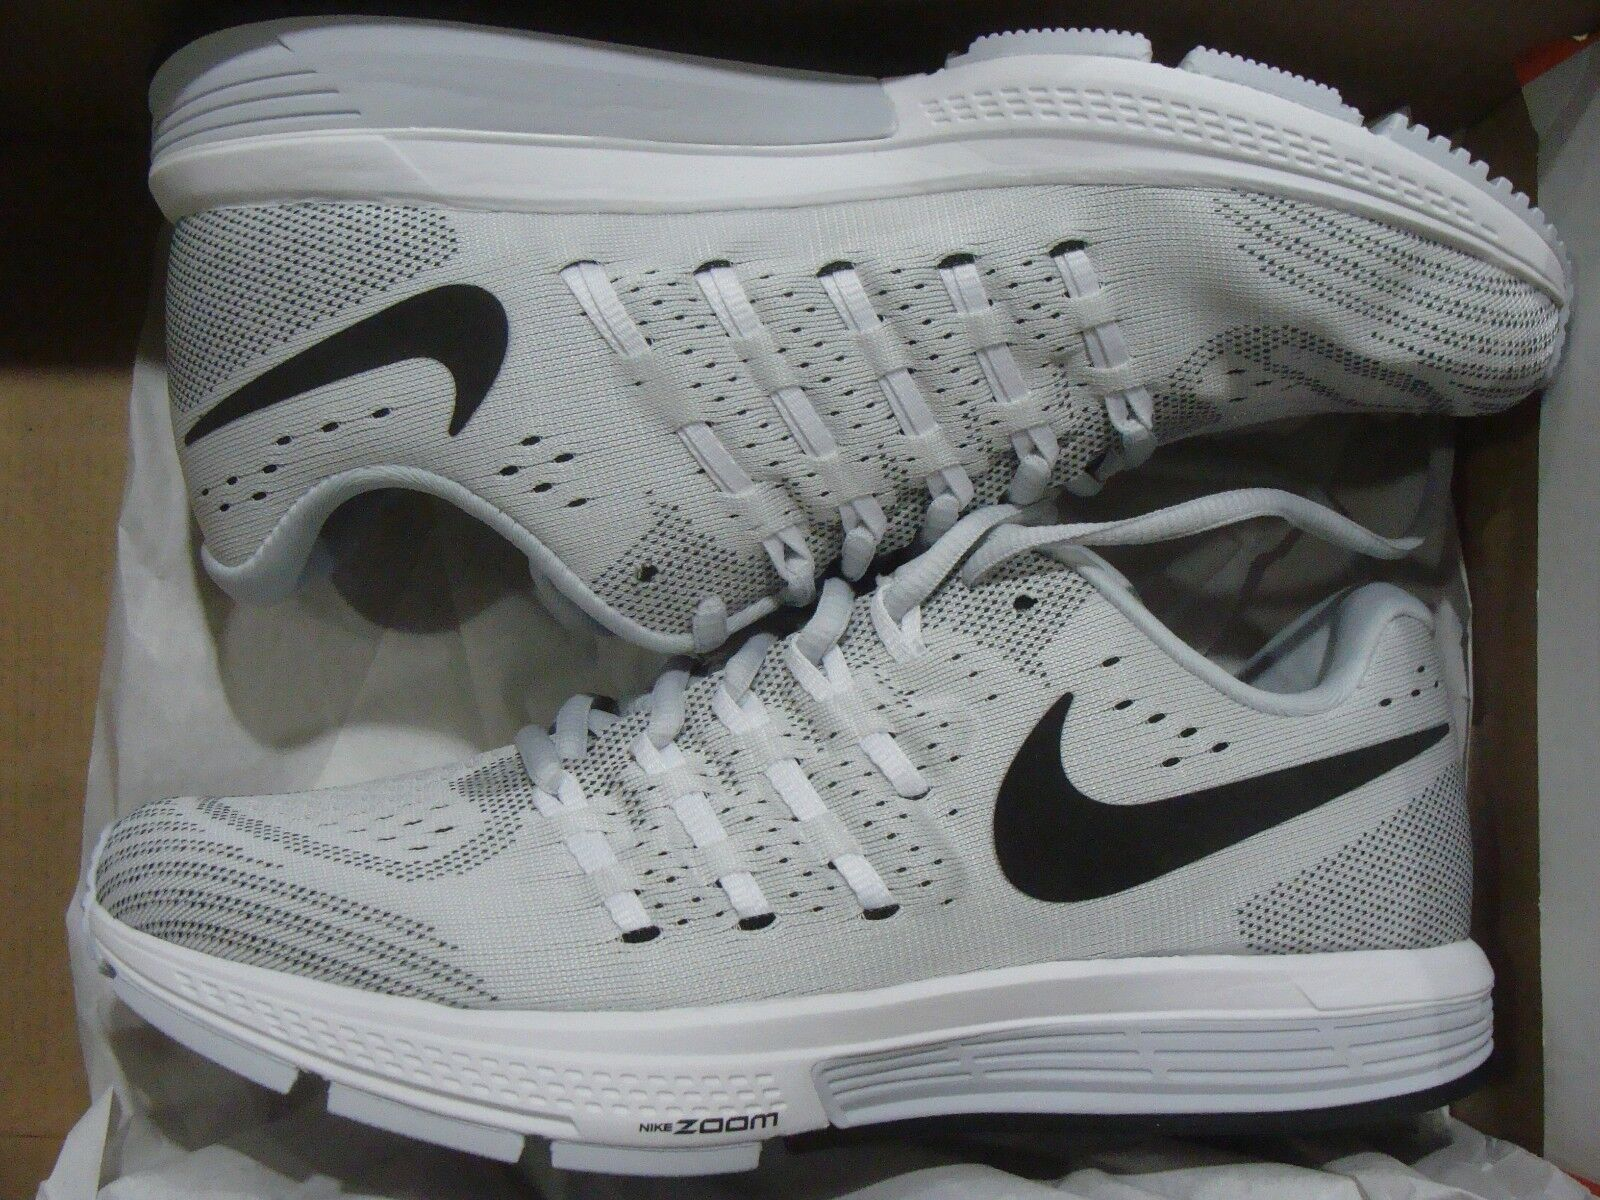 Wild casual shoes MEN'S NIKE AIR ZOOM VOMERO 11 RUNNING 818099 002 SIZE 7.5~13